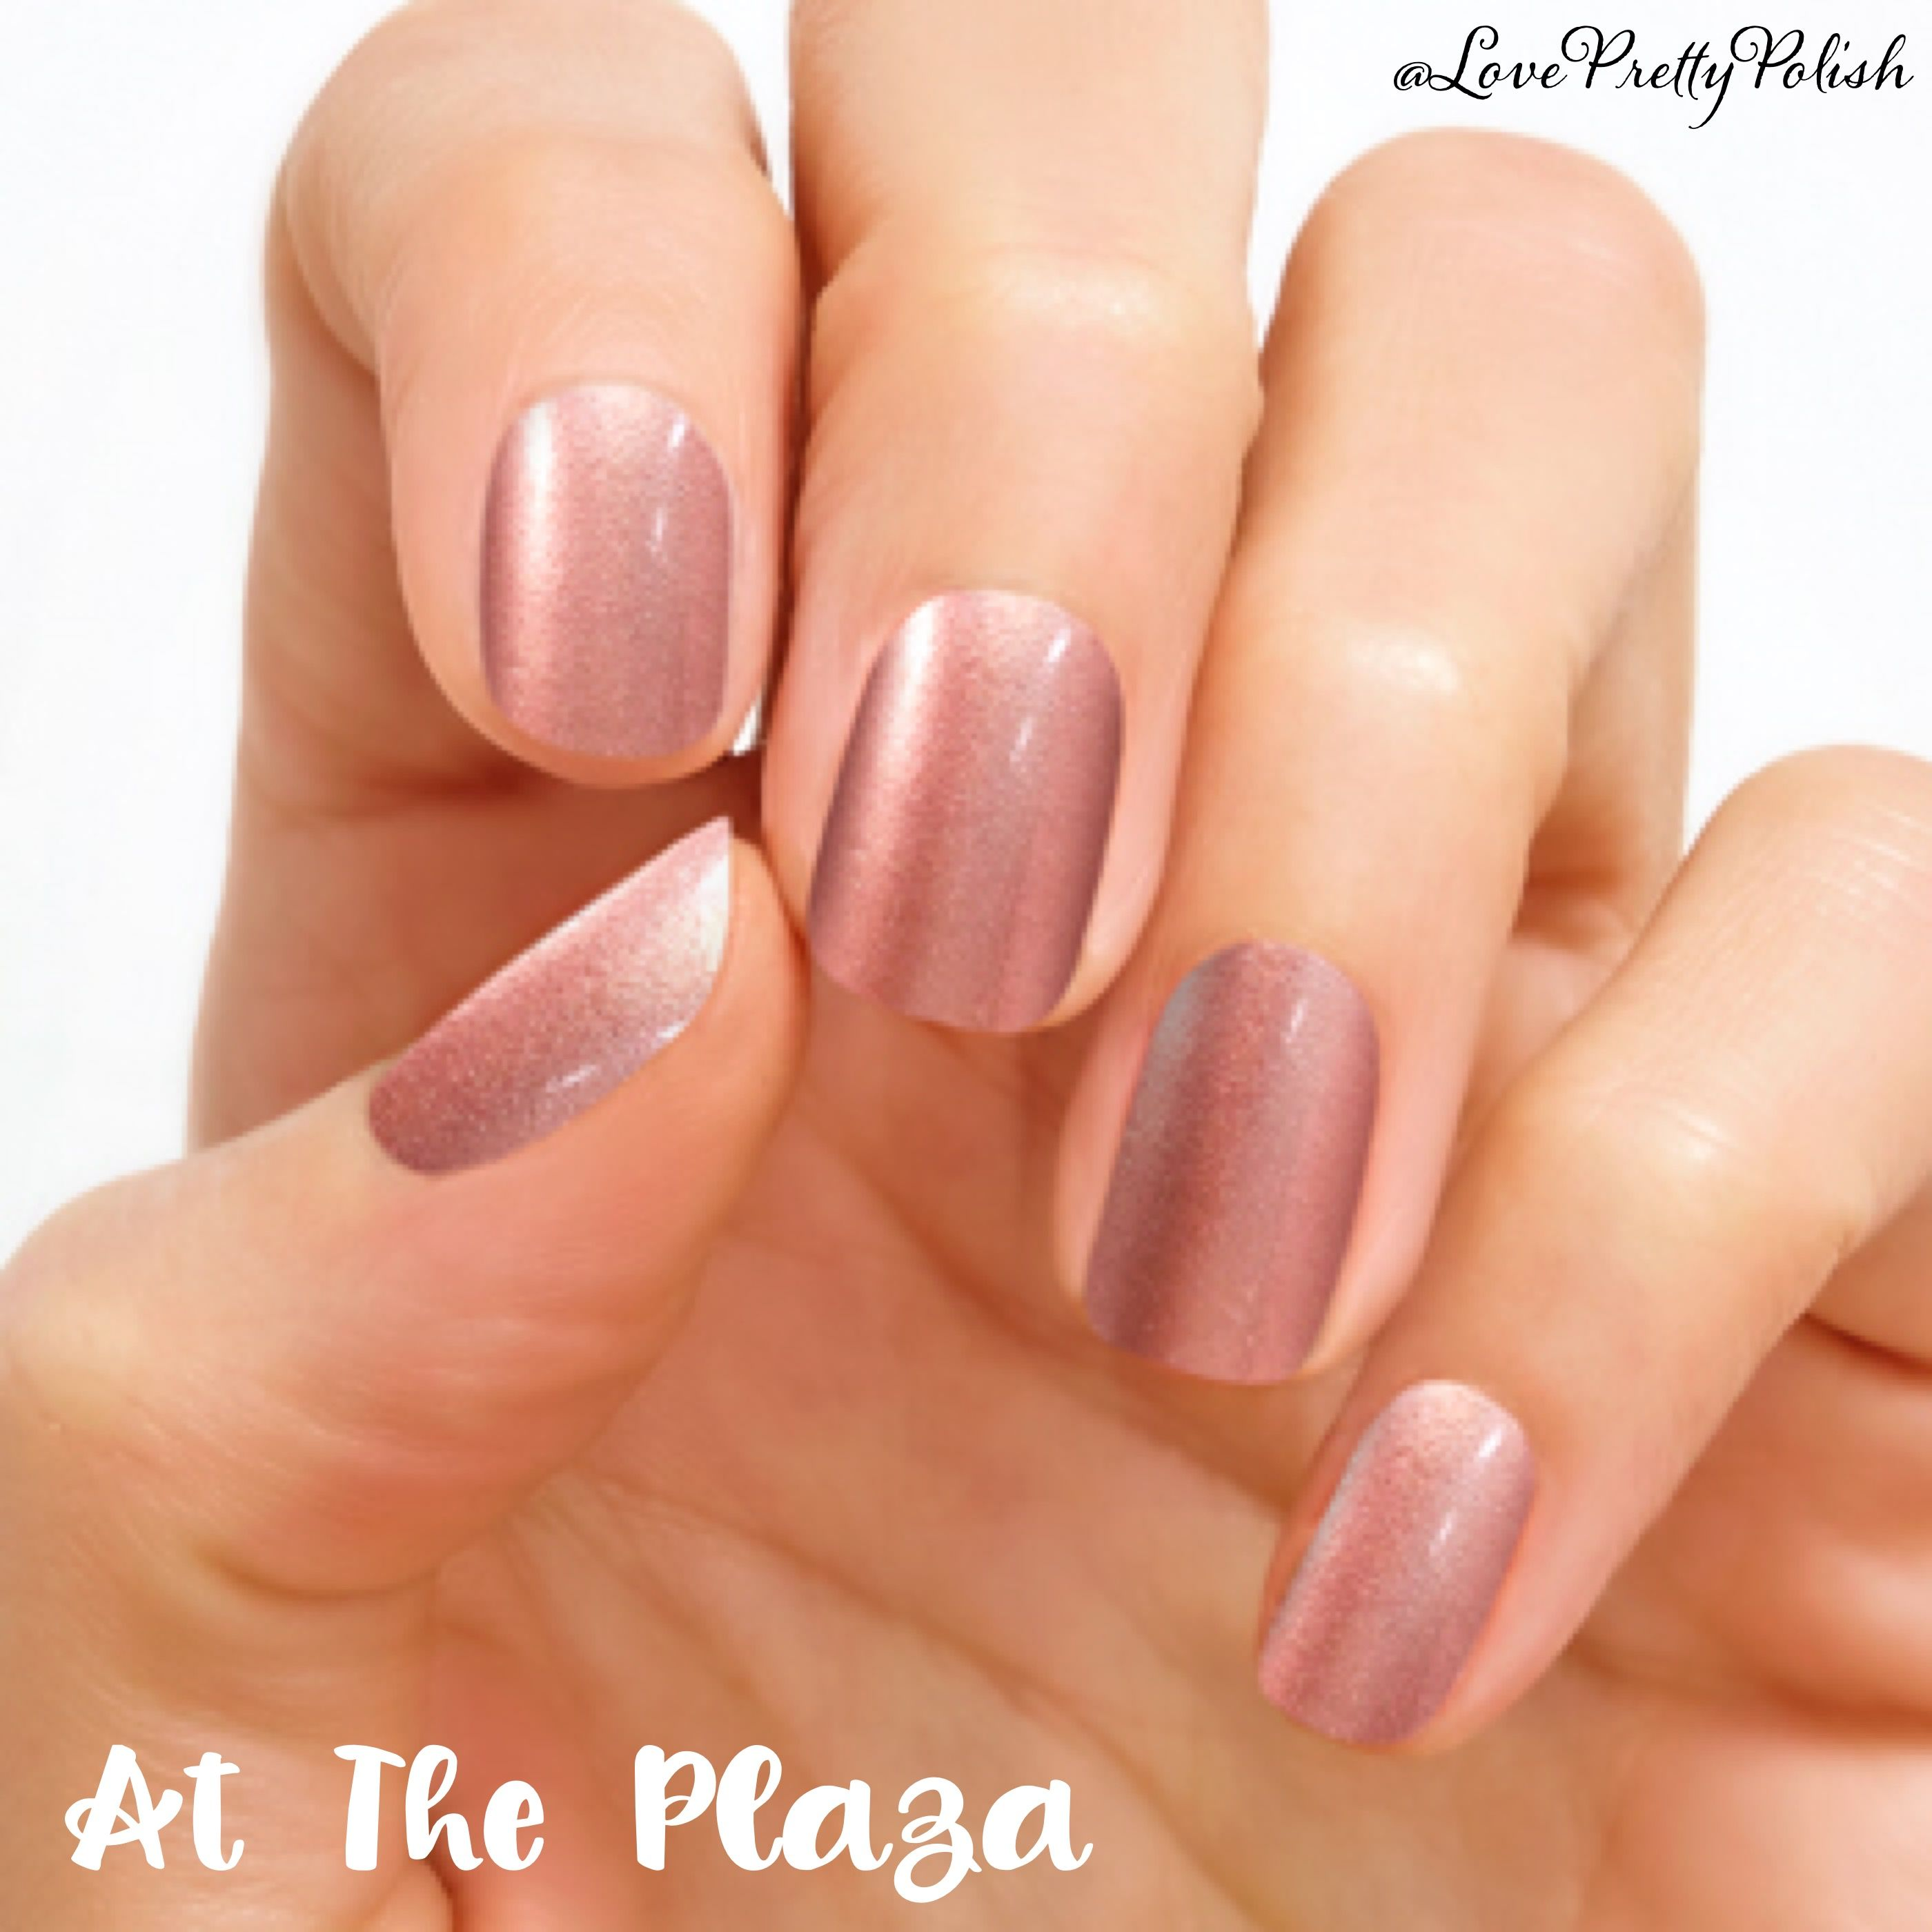 At The Plaza Pale Pink Gets A Shimmery Update With At The Plaza Nails Shimmer Finish Each Set Includes 16 Color Street Nails Nail Polish Strips Color Street